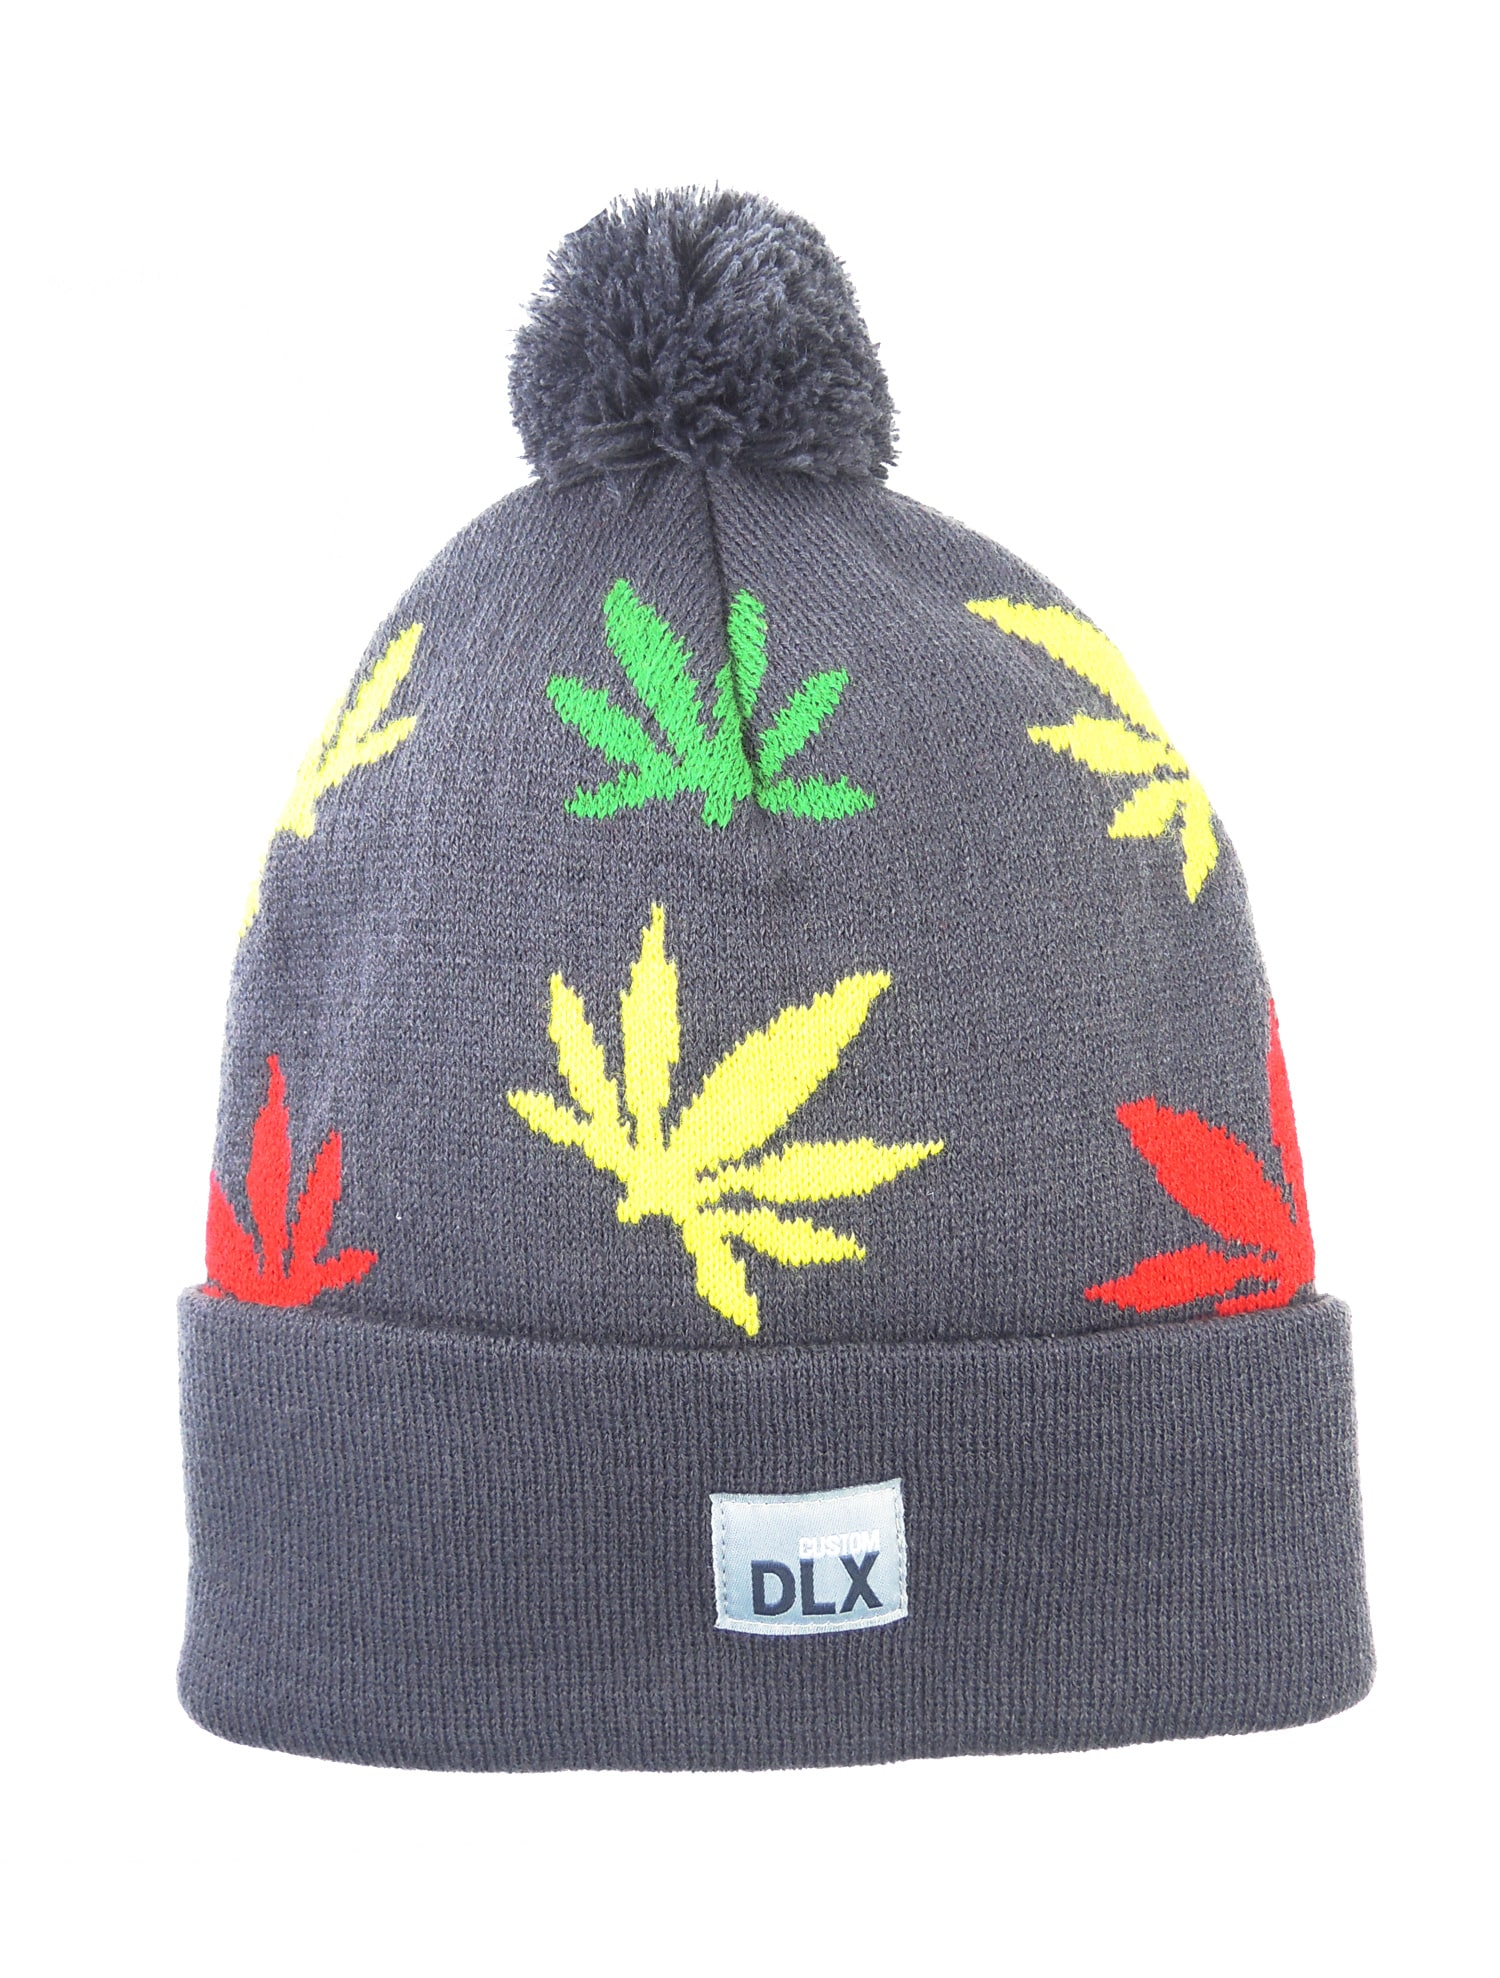 Image of CDX Grass Print Beanie - Charcoal